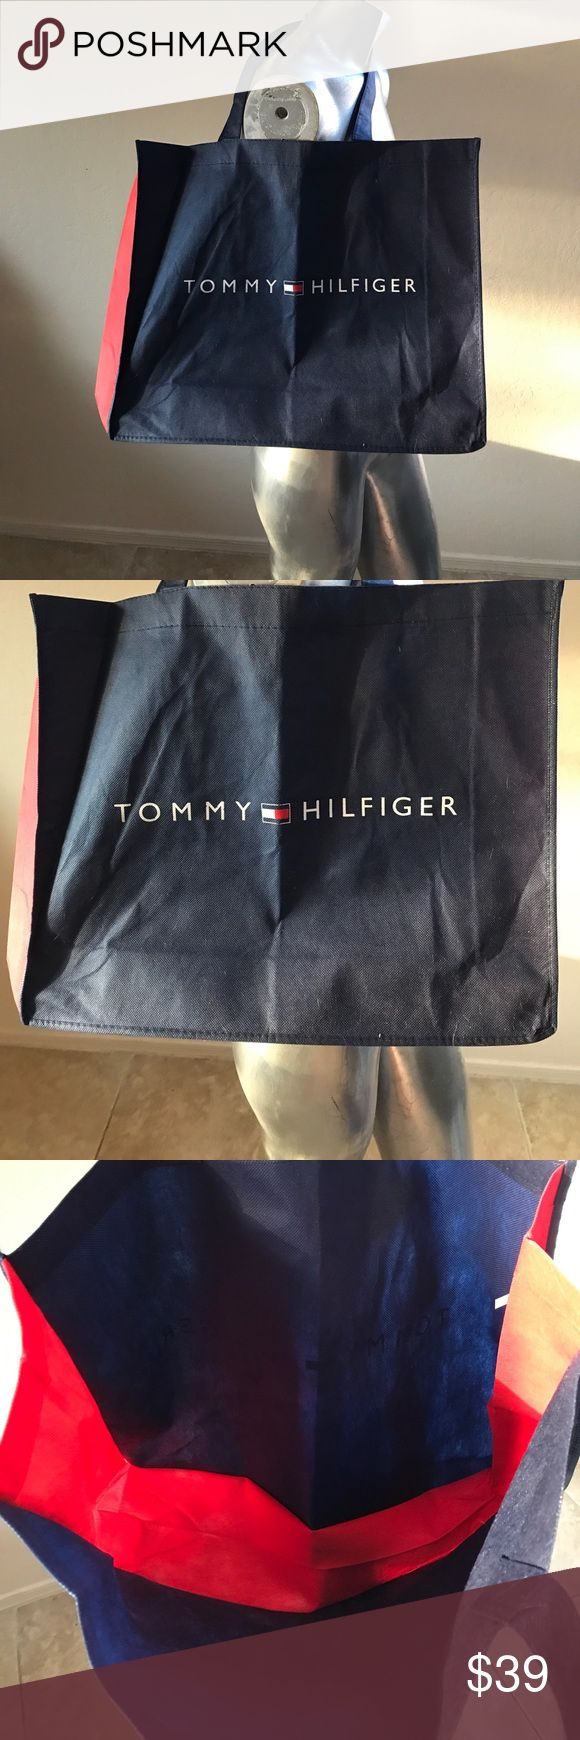 "New Tommy Hilfiger Tote Bag New without tags Tommy Hilfiger tote bag, measures 19"" wide by 15"" long, canvas Tommy Hilfiger Bags Totes"